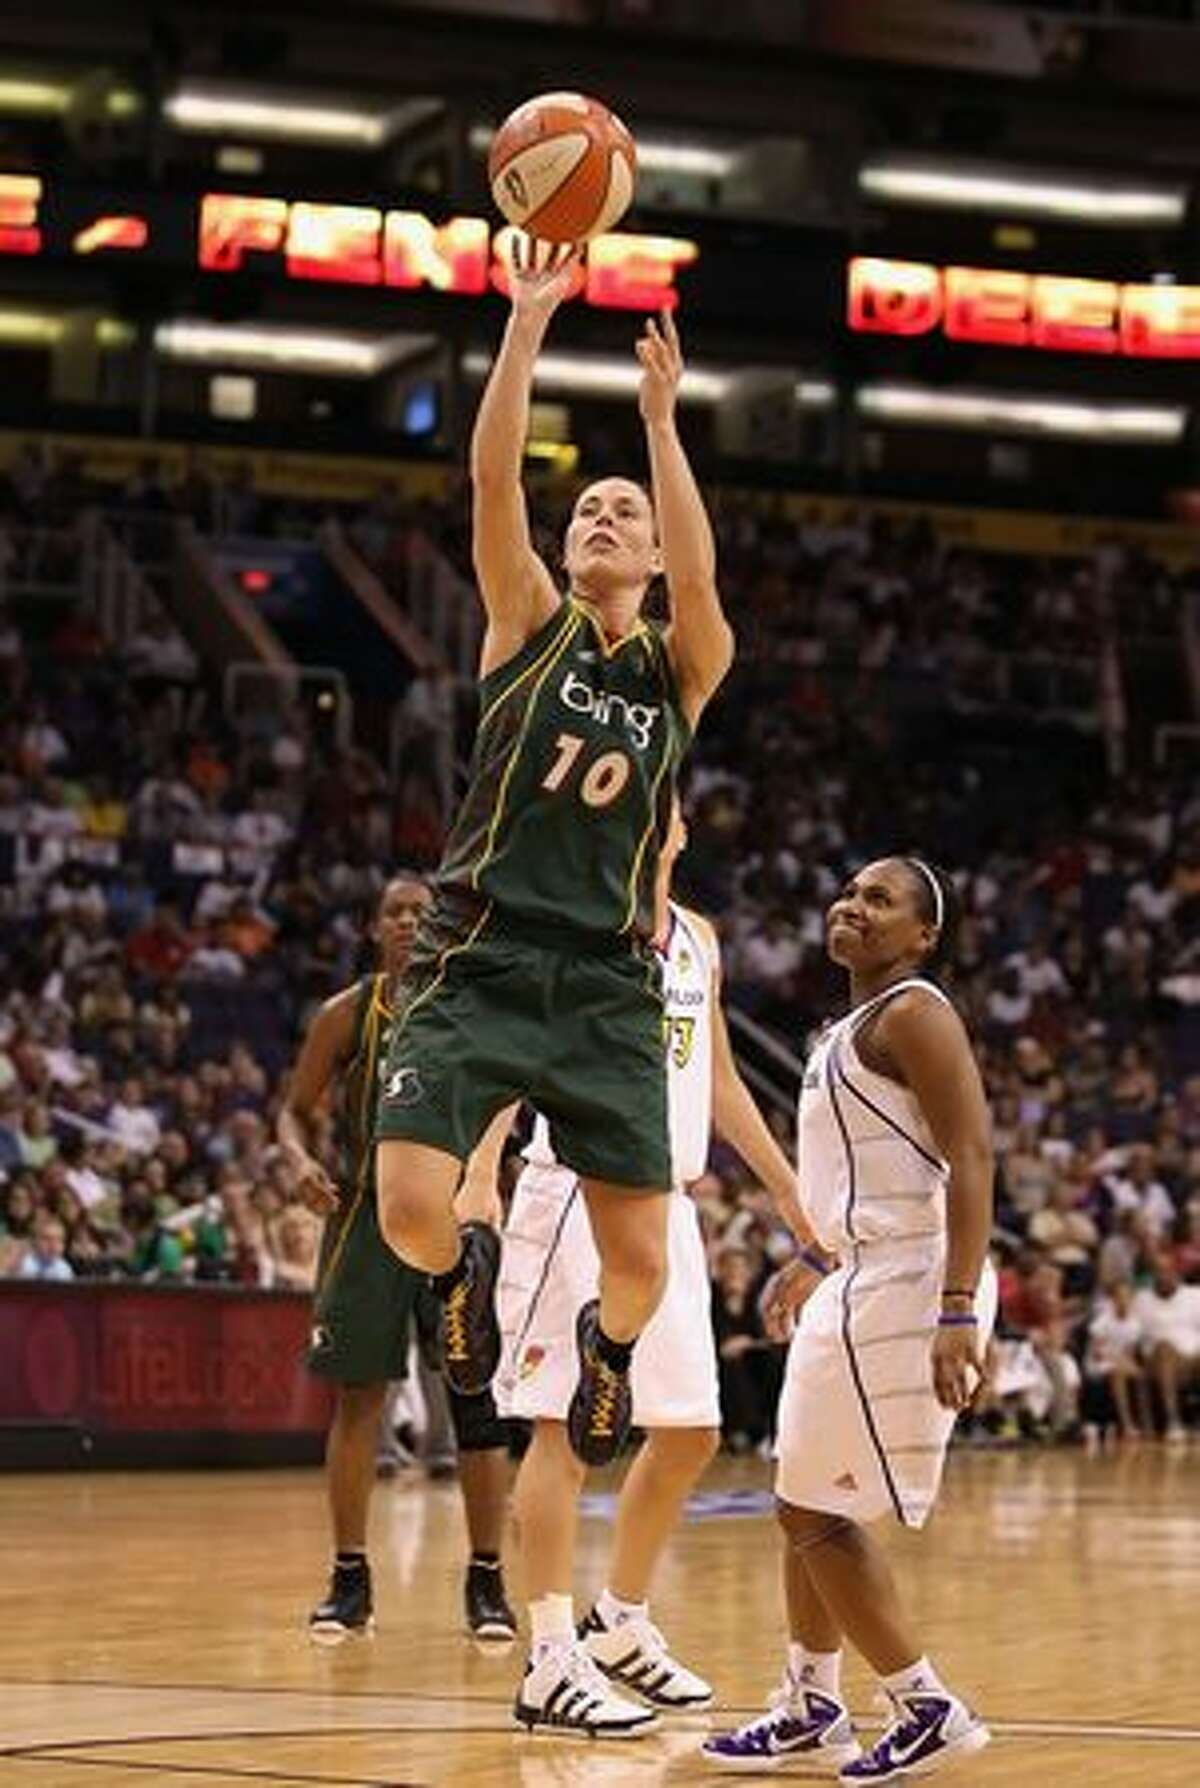 Sue Bird #10 of the Seattle Storm puts up a shot against the Phoenix Mercury.